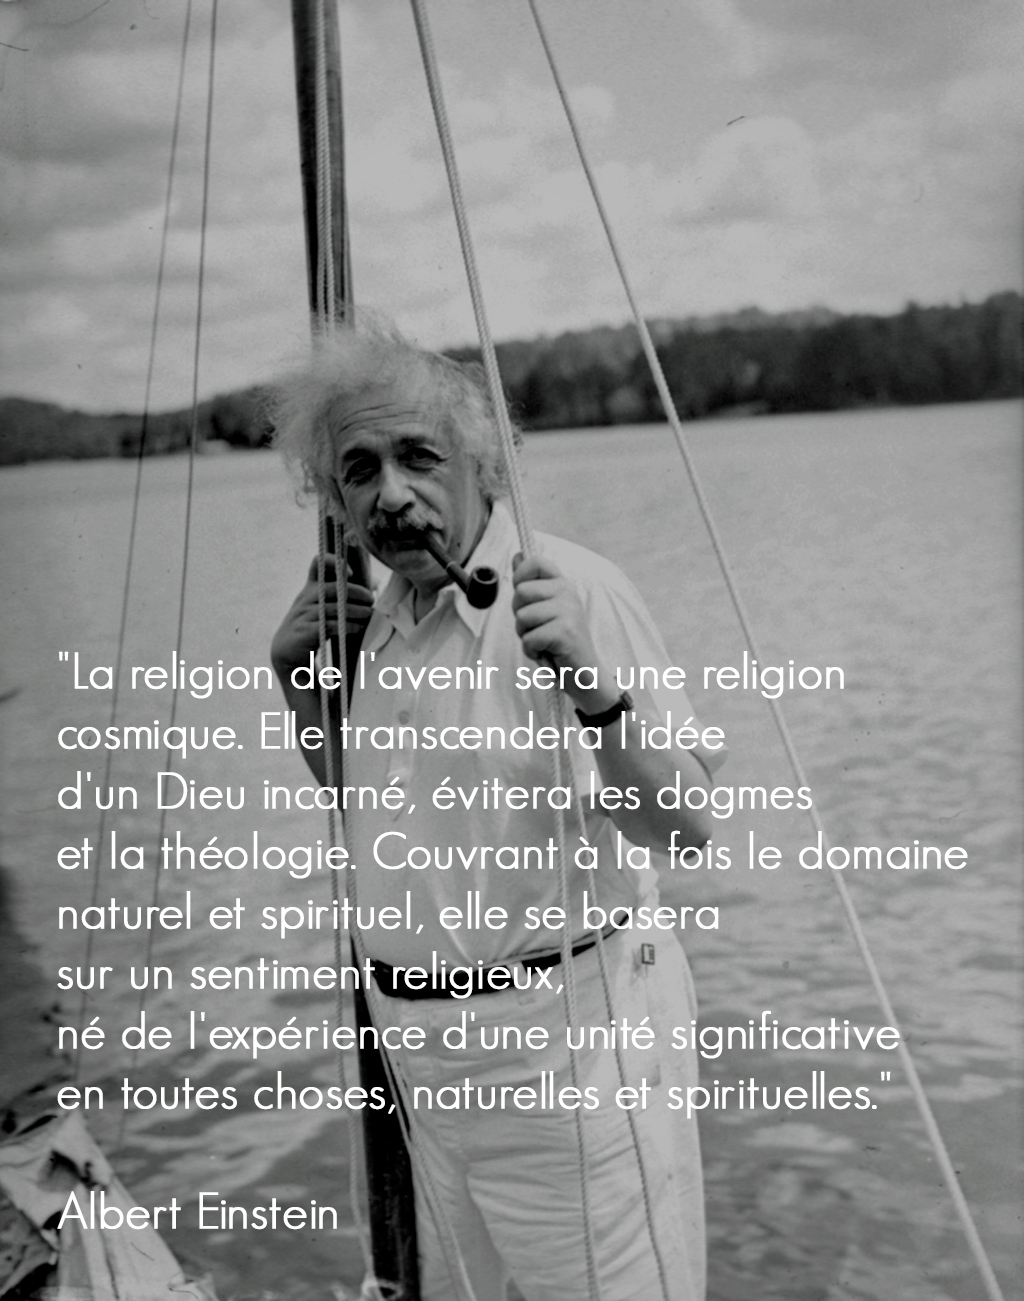 einstein-religion-cosmique